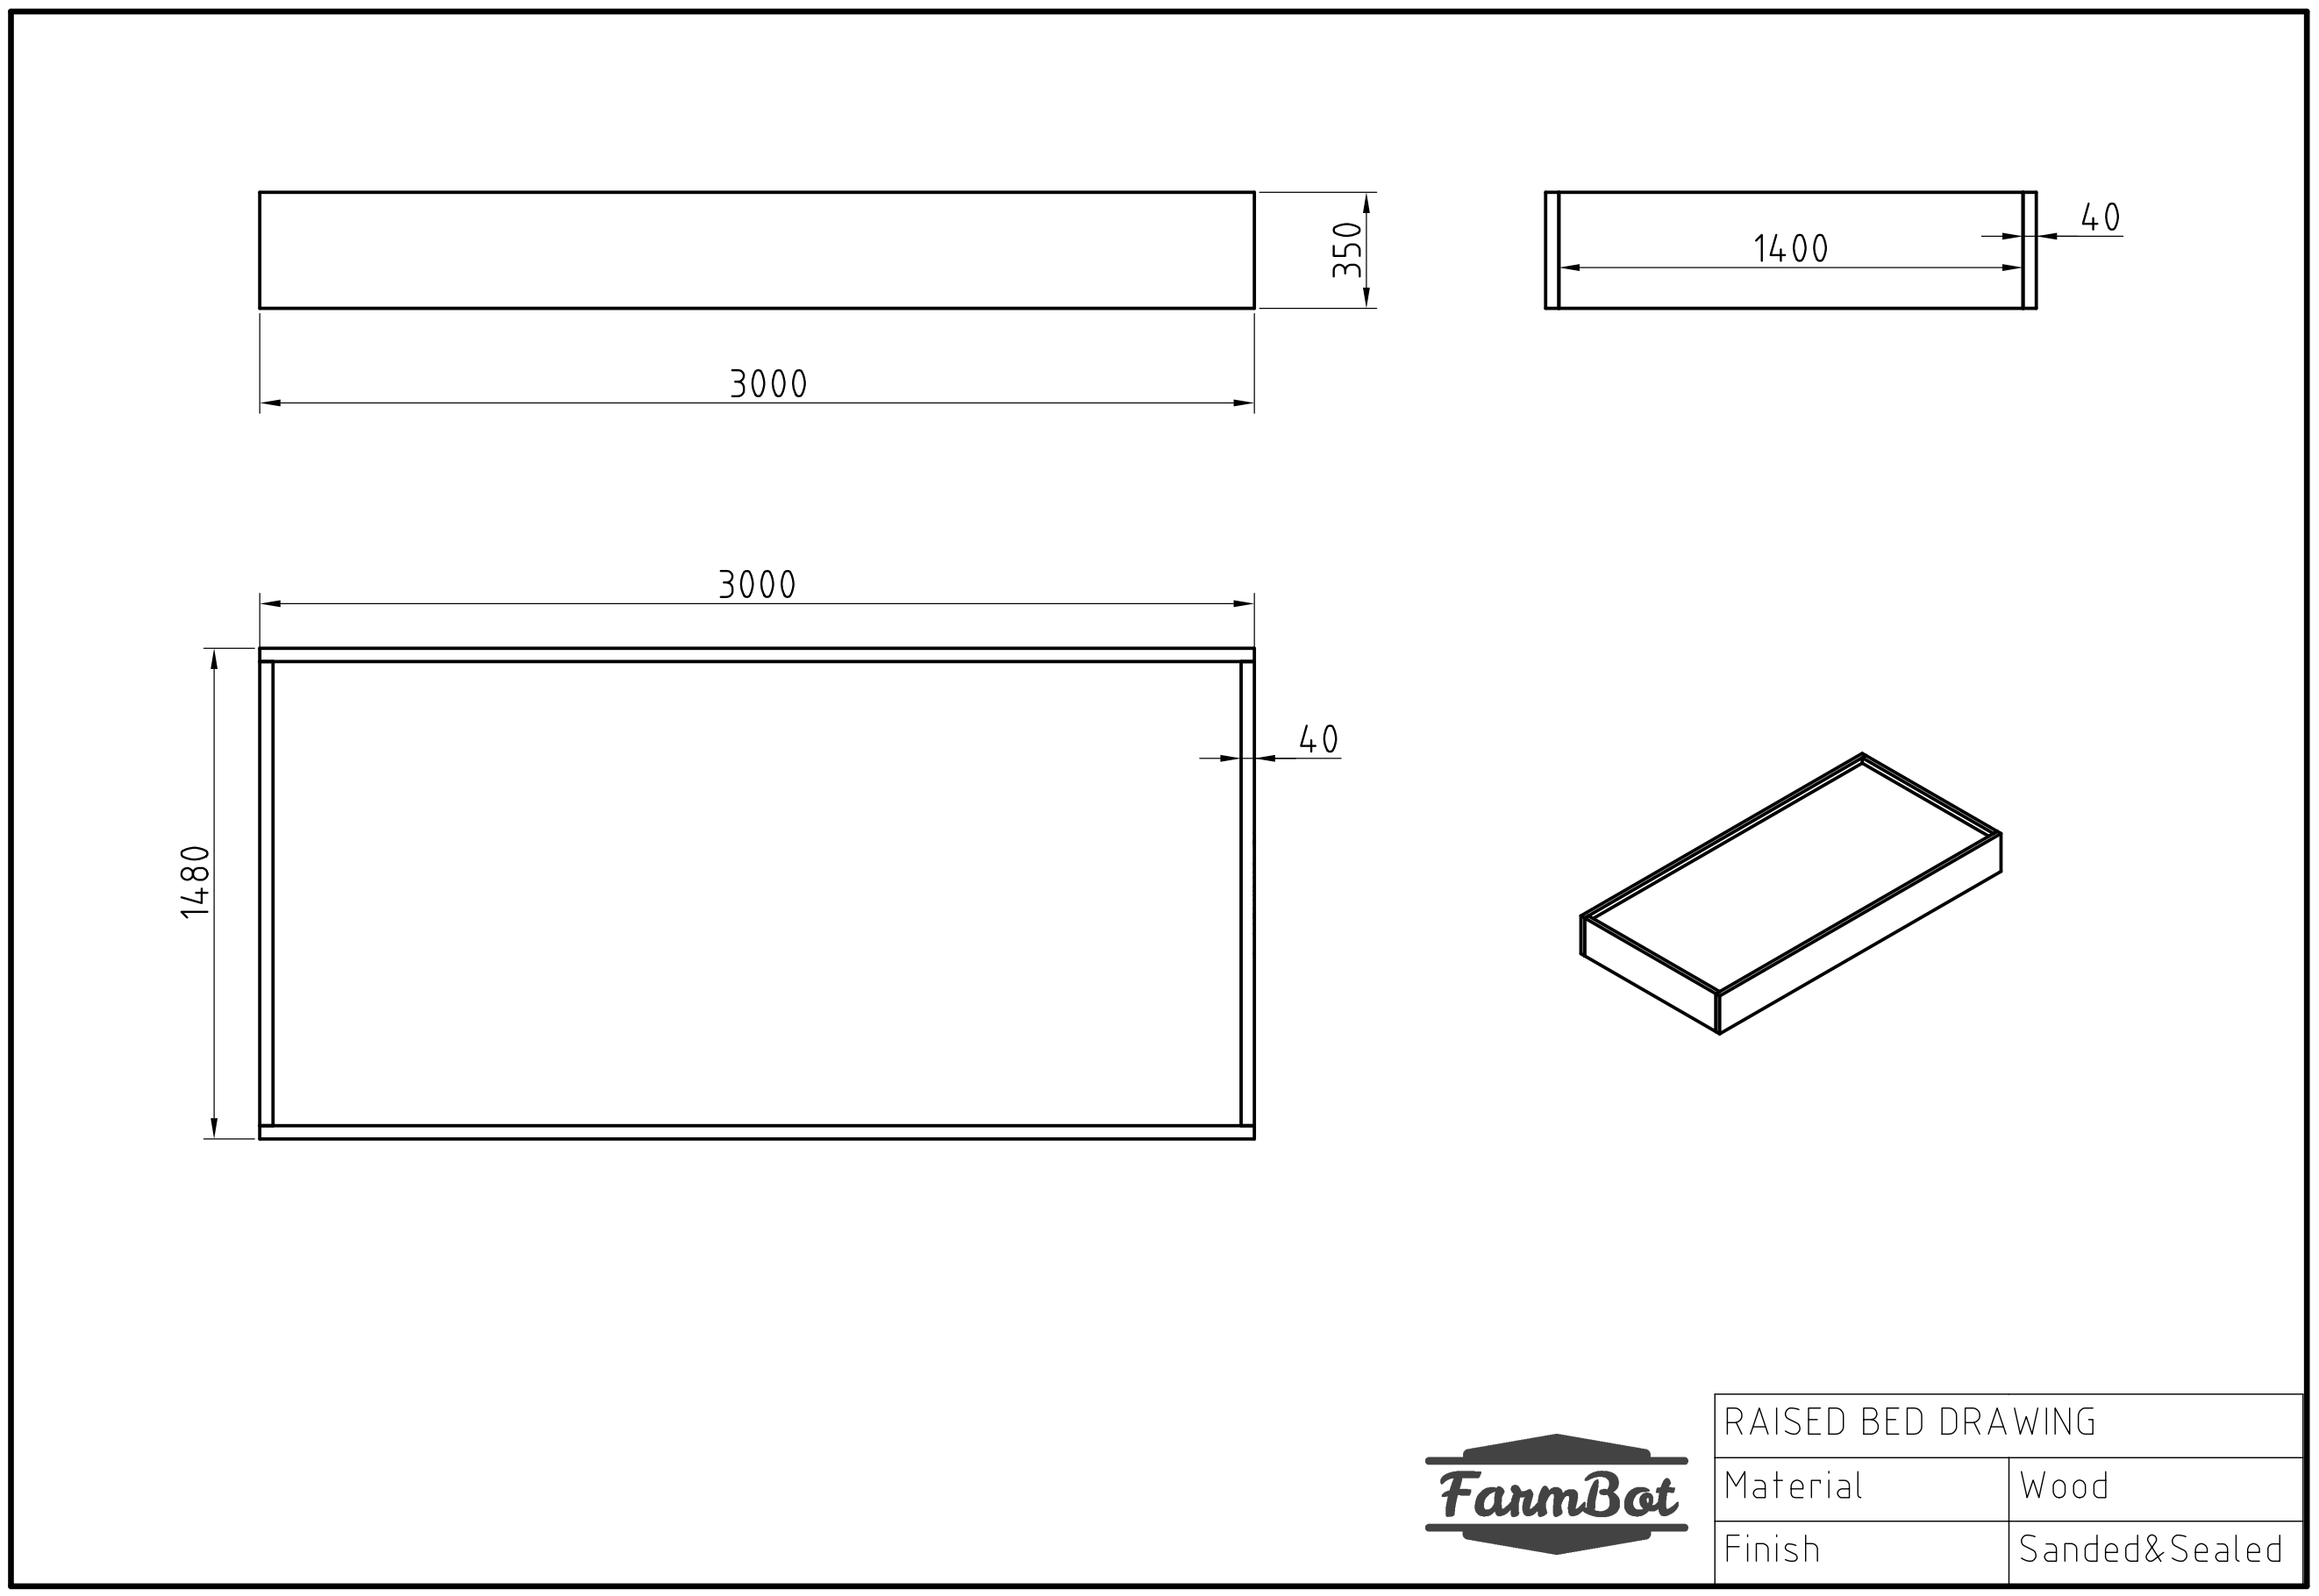 Bed Dimensions.Building A Fixed Raised Bed